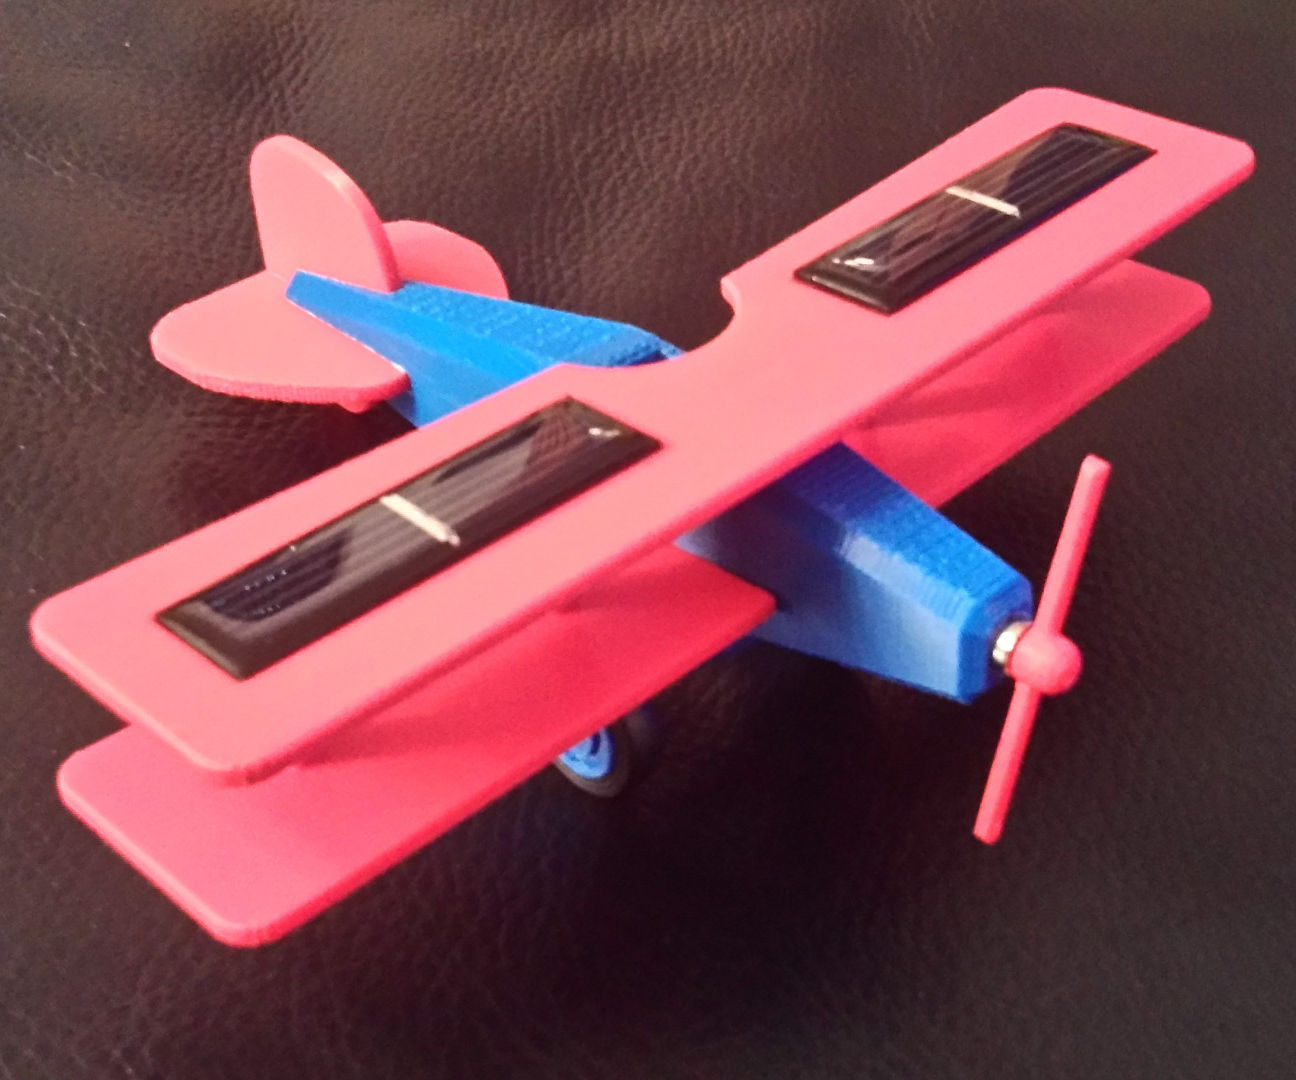 Plane with solar cells and micro motor